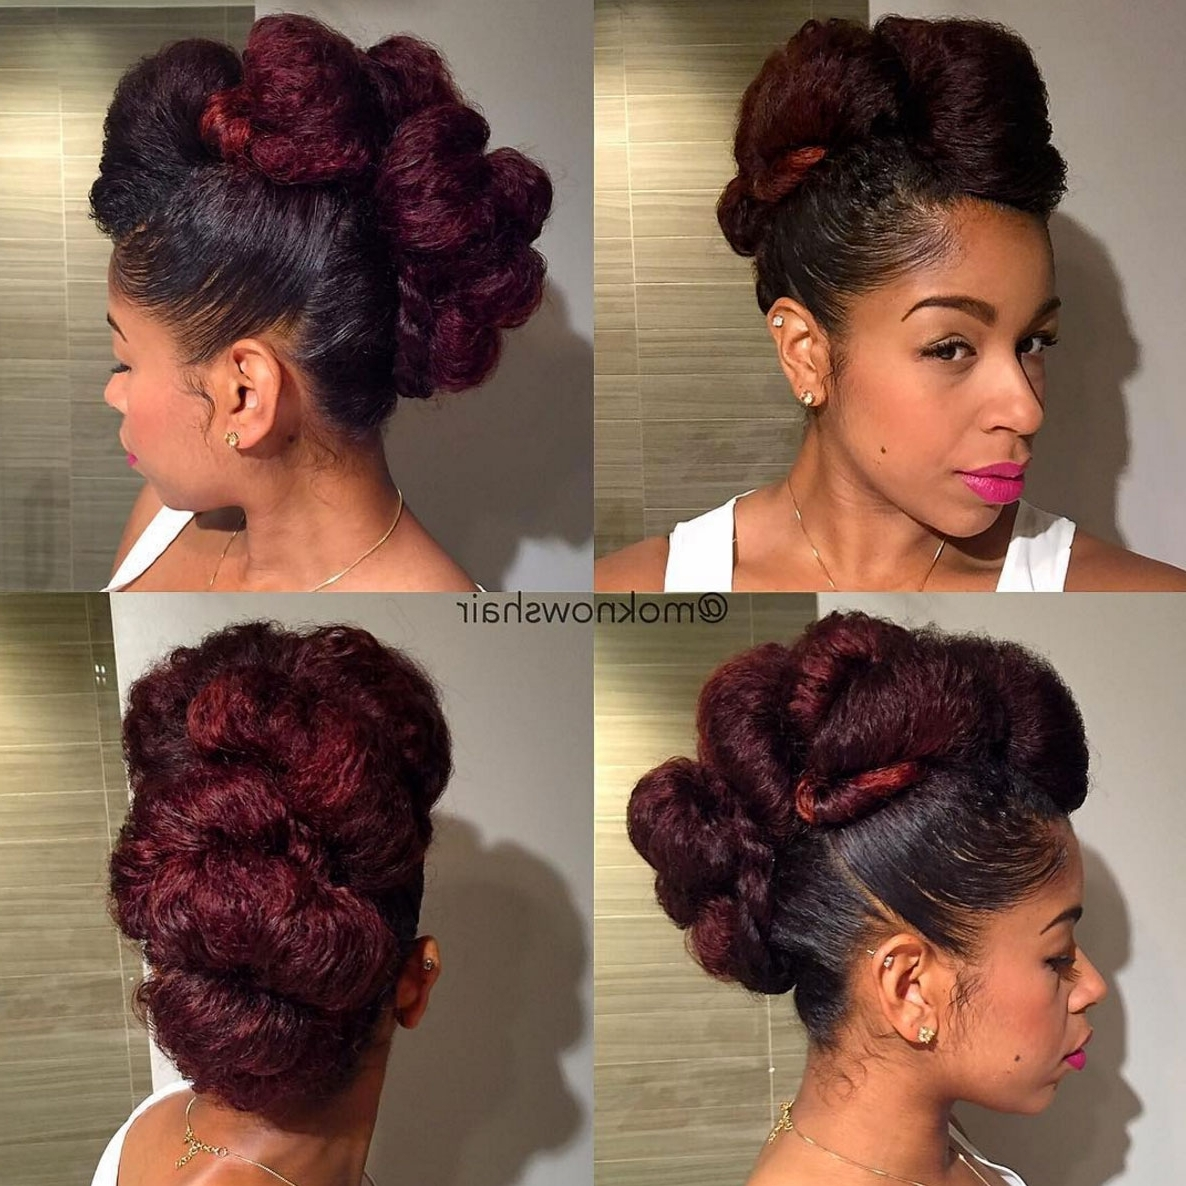 Fashionable Sky High Pompadour Braid Pony Hairstyles Within 39 Hairstyles Perfect For Summer Weddings – Essence (View 9 of 20)